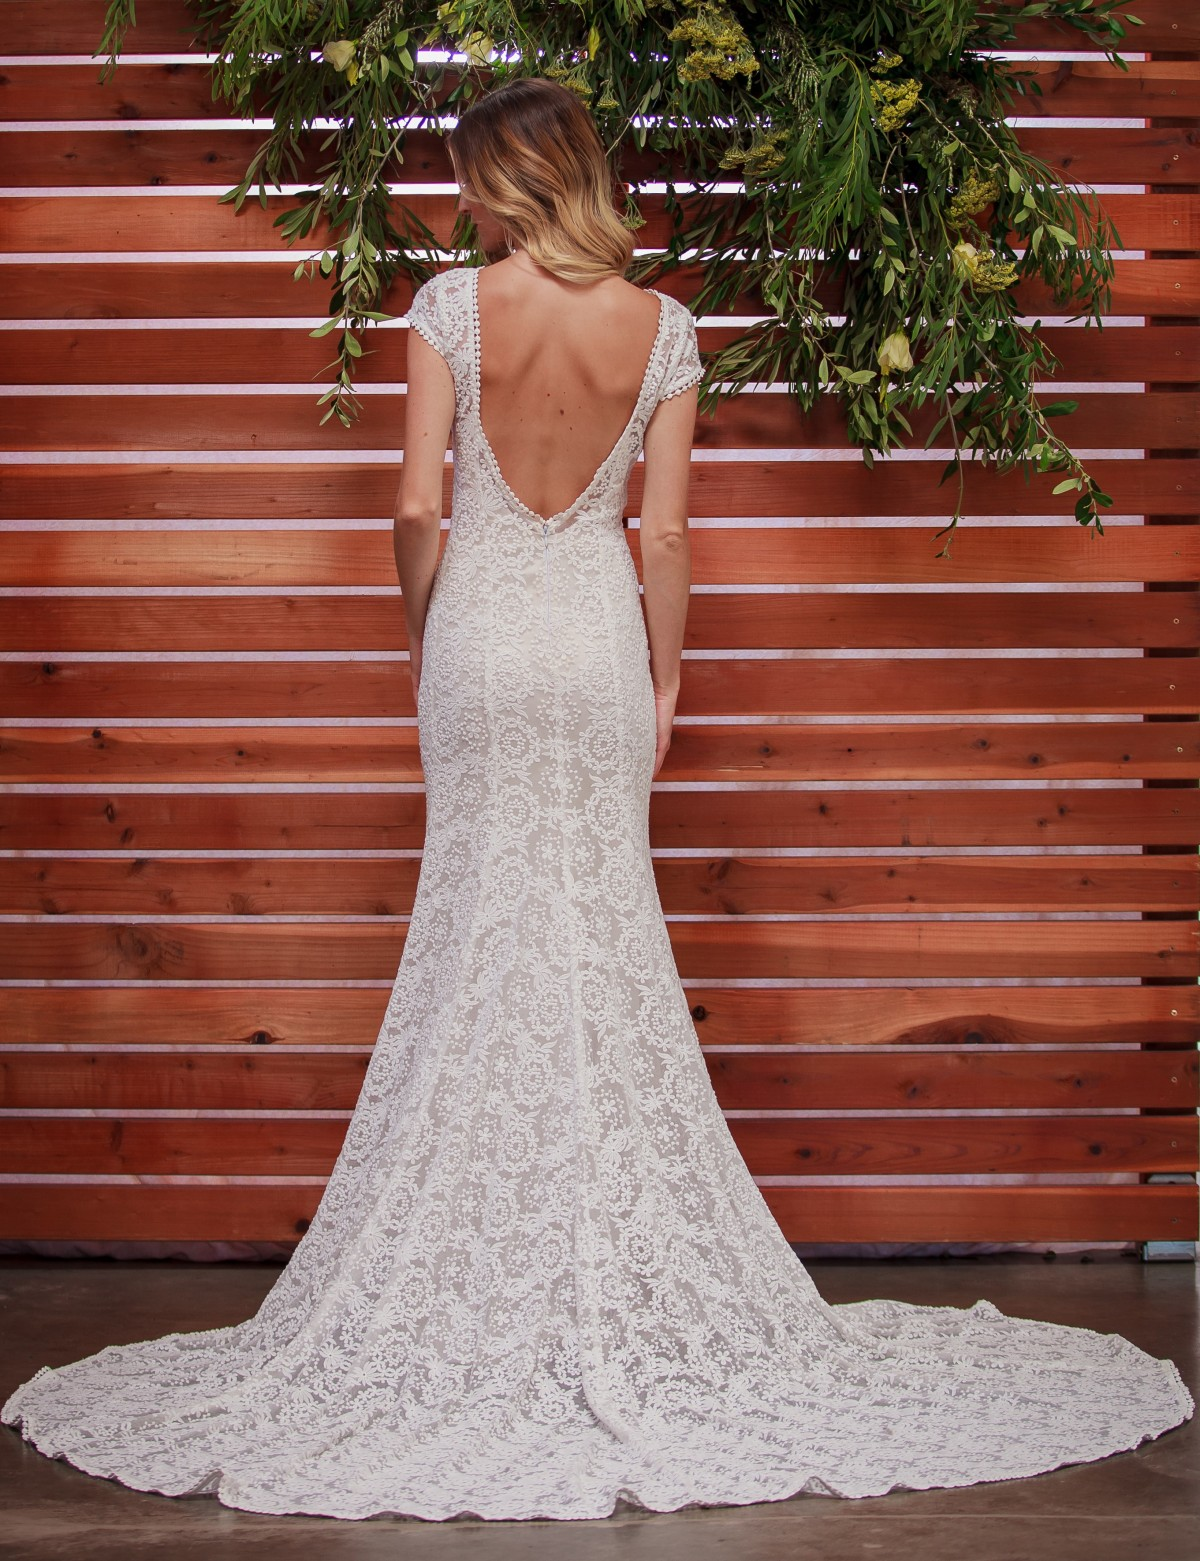 nellia-exquisite-backless-bohemian-lace-wedding-dress-with-boat-neck-and-capped-sleeves